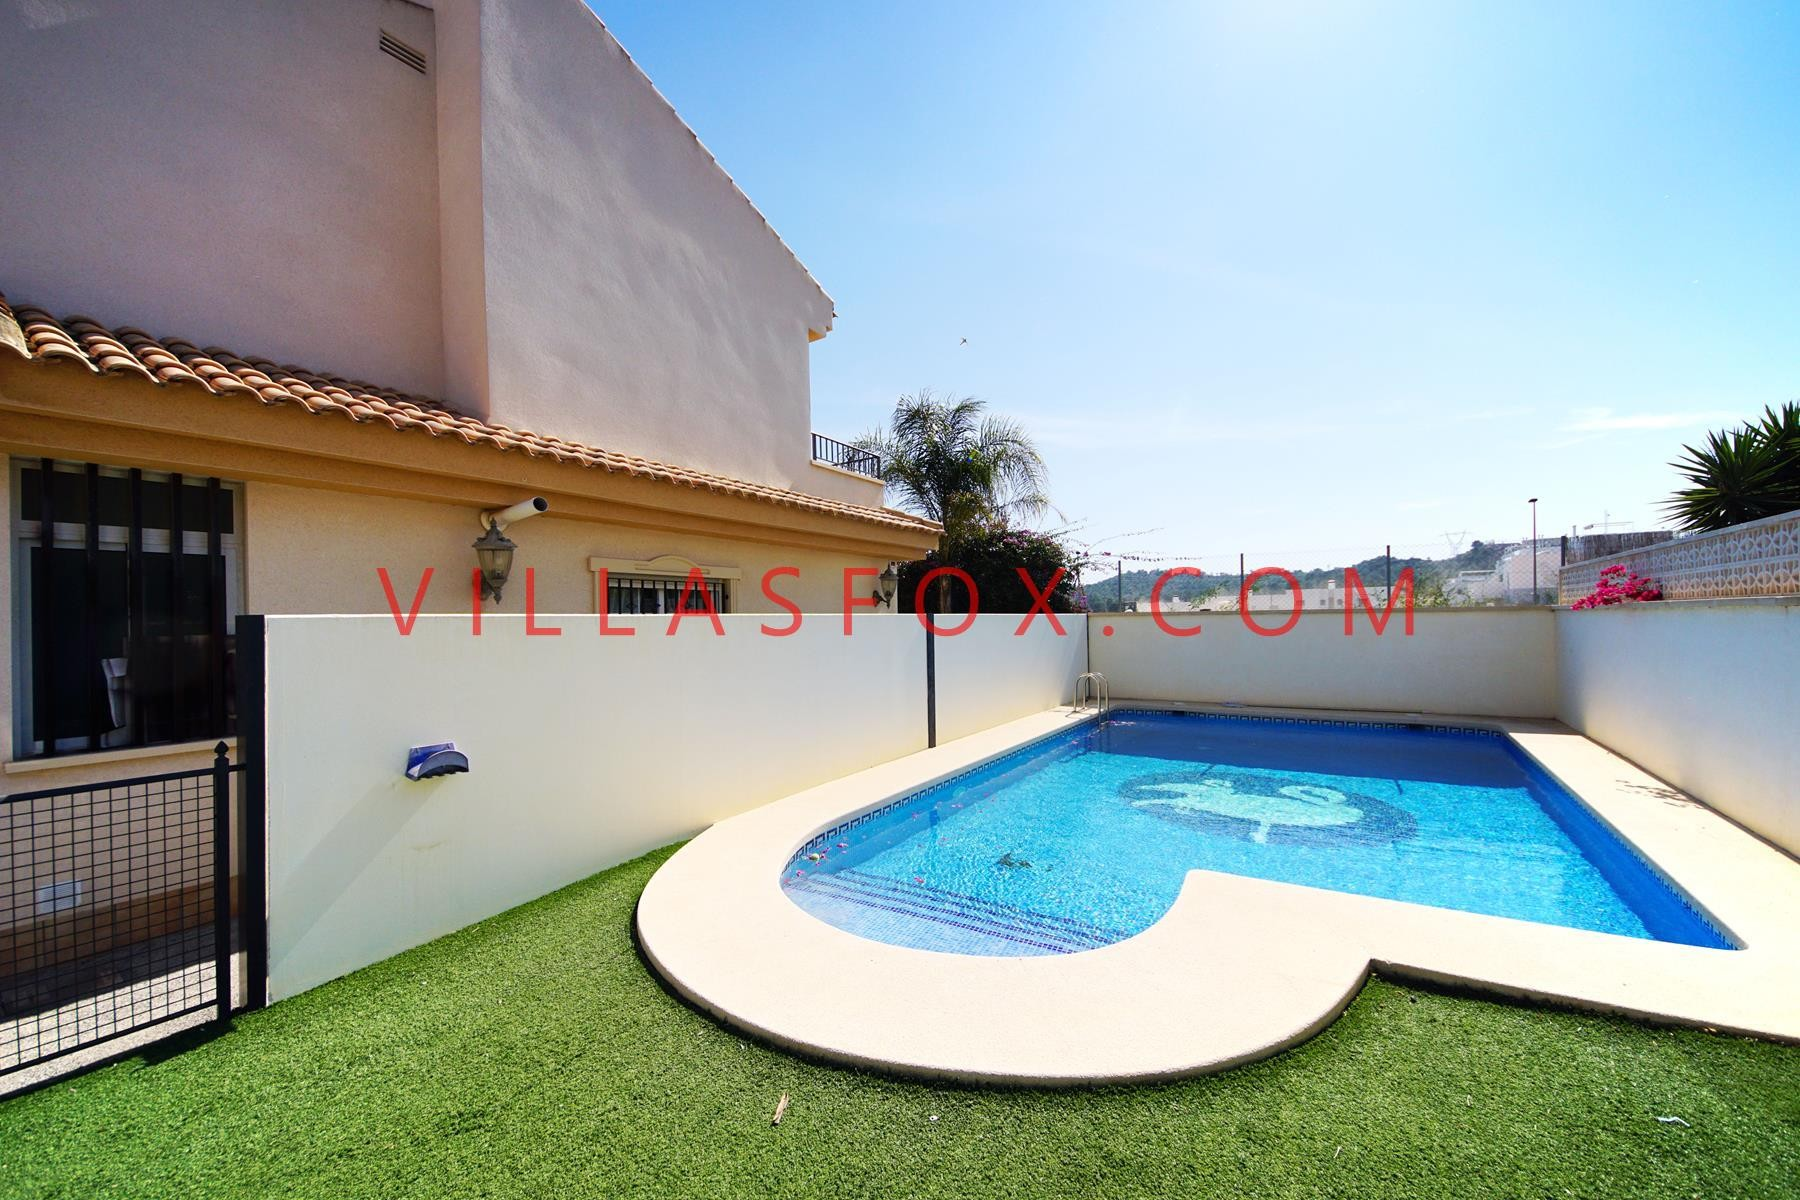 3-bedroom semi-detached villa, Los Flamencos, La Cañada